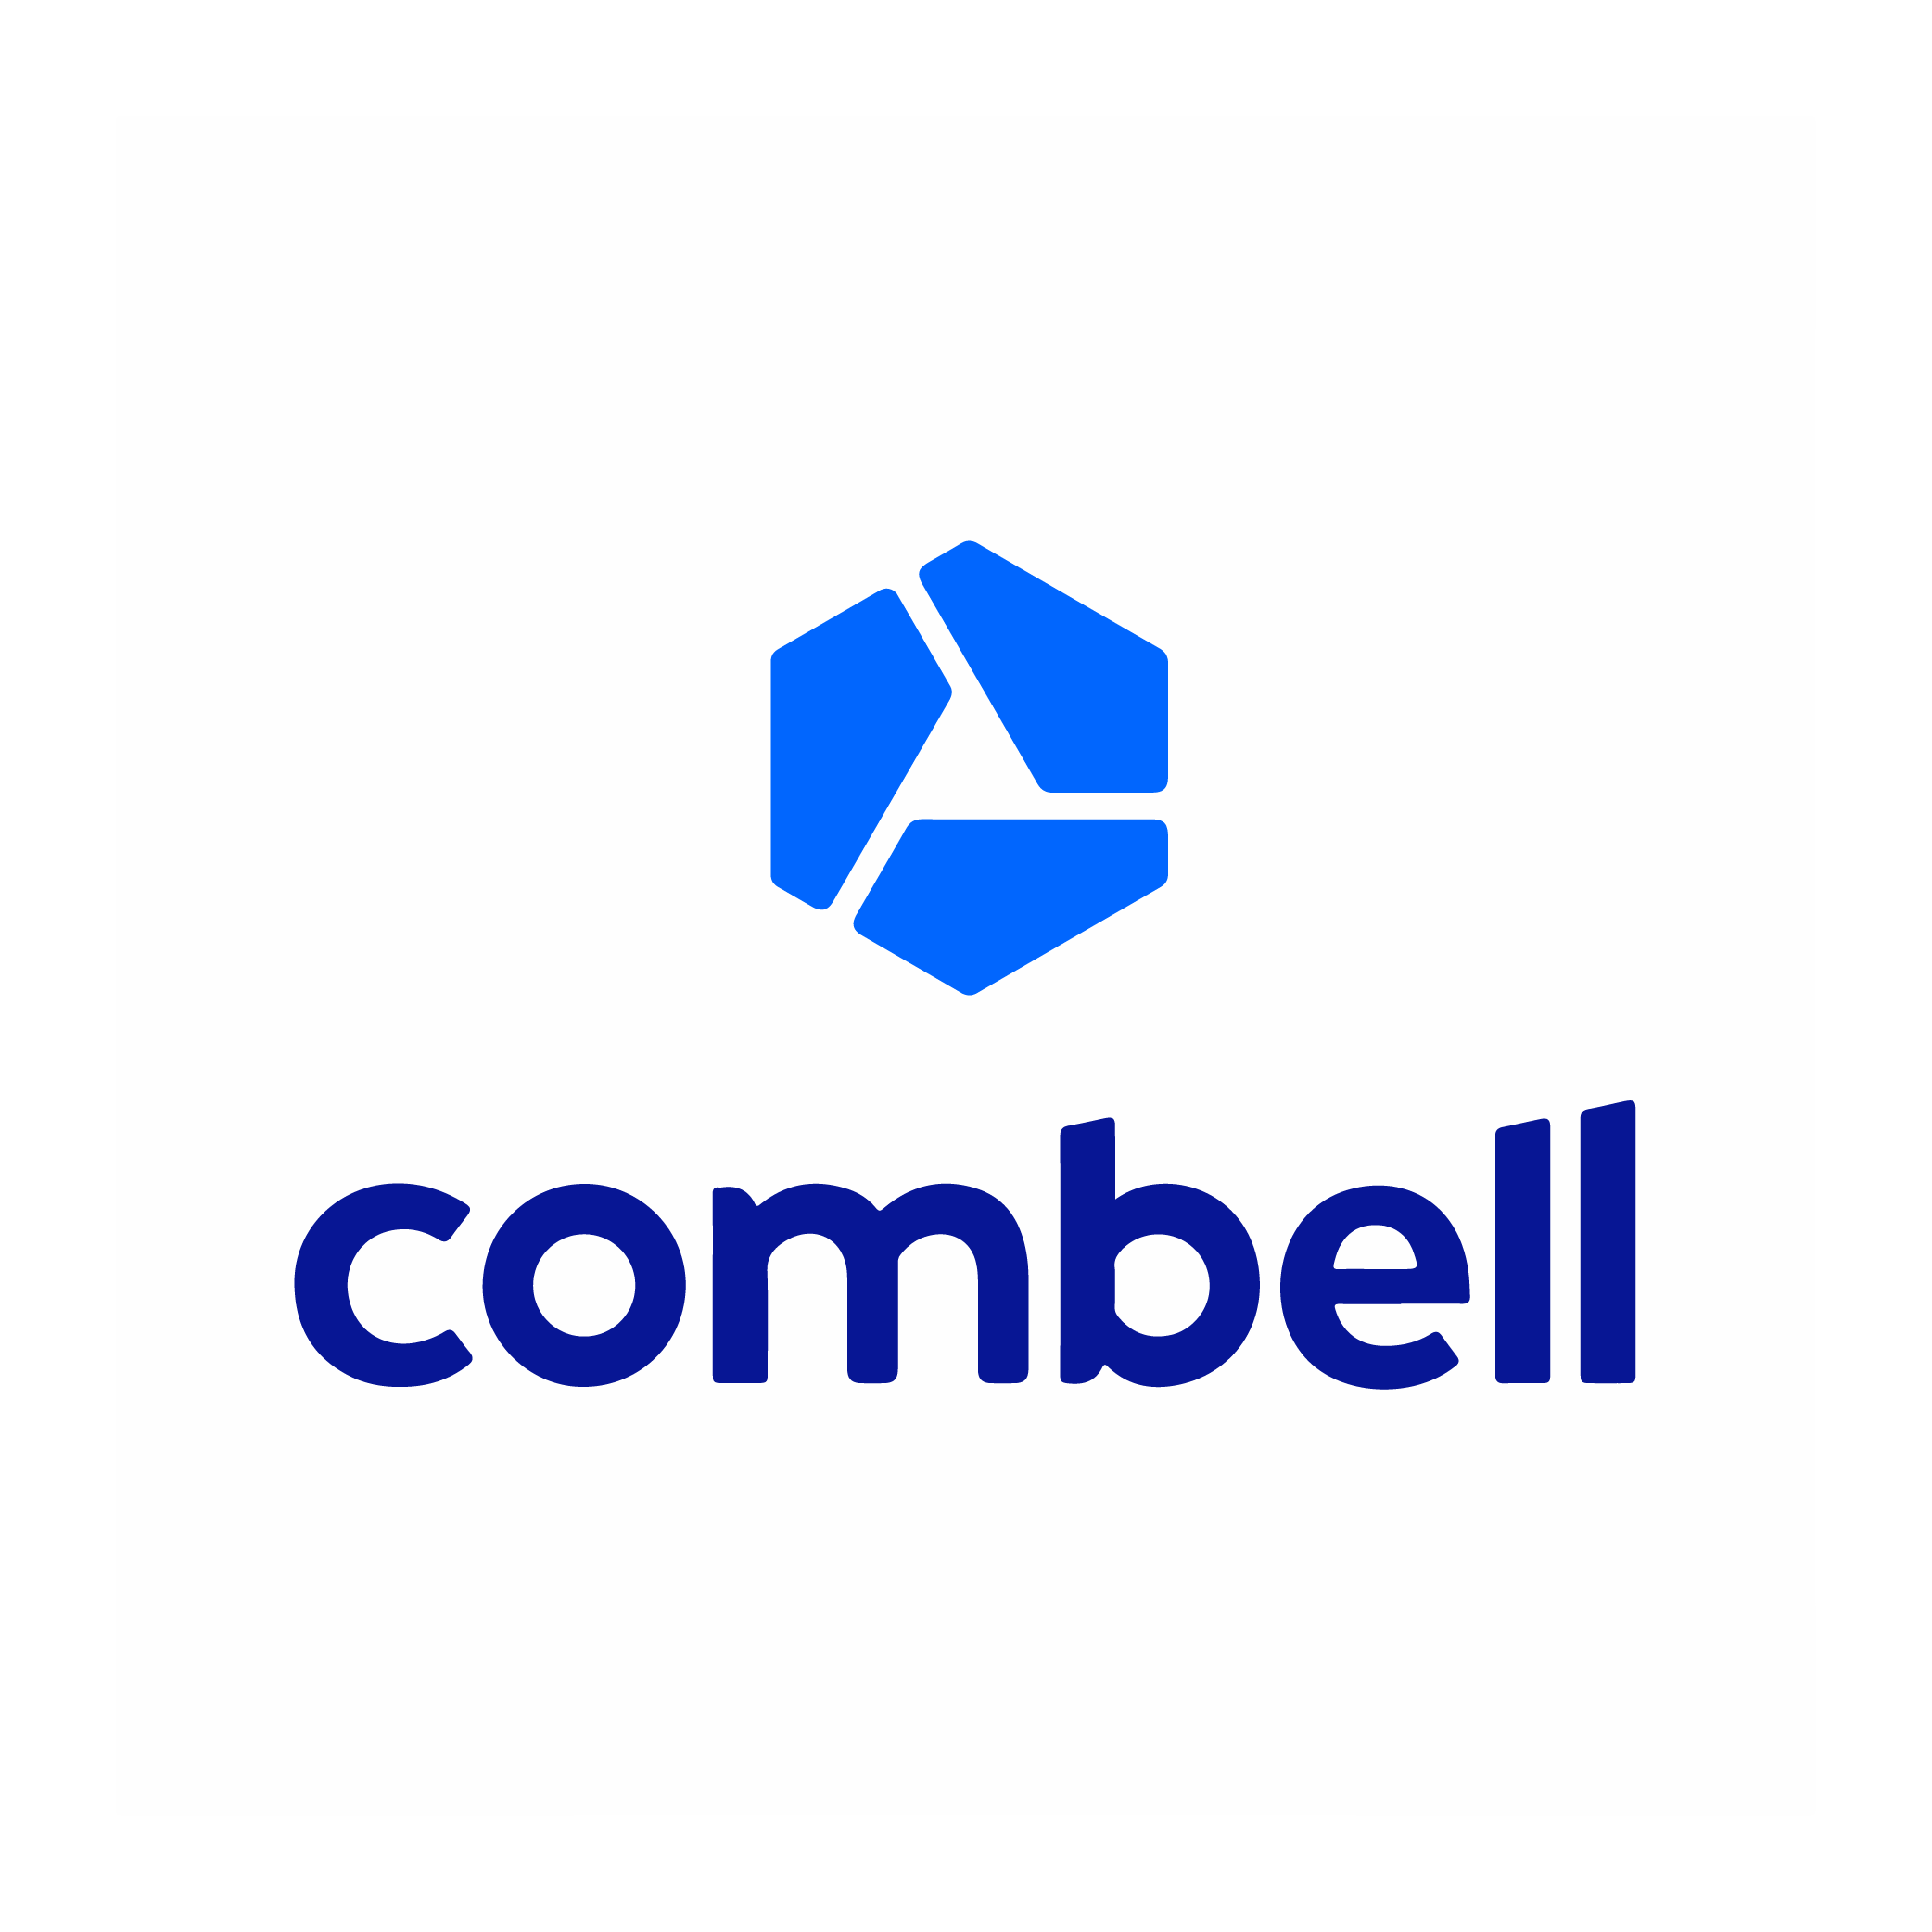 Combell